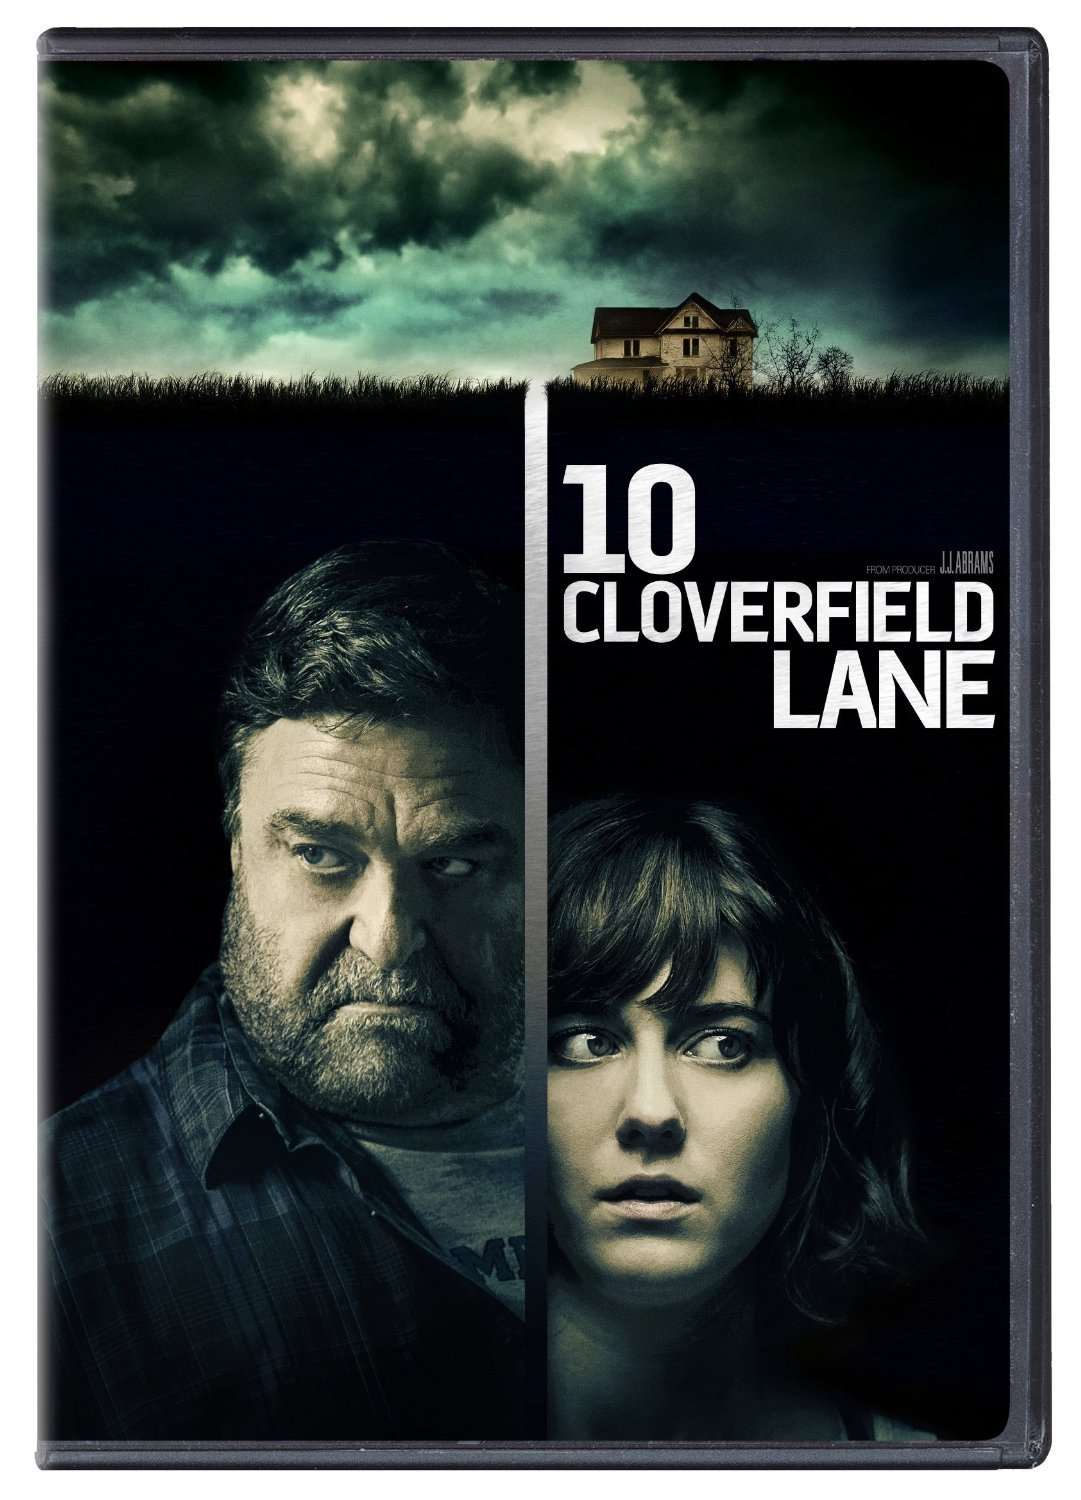 10 Cloverfield Lane (DVD, 2016) New